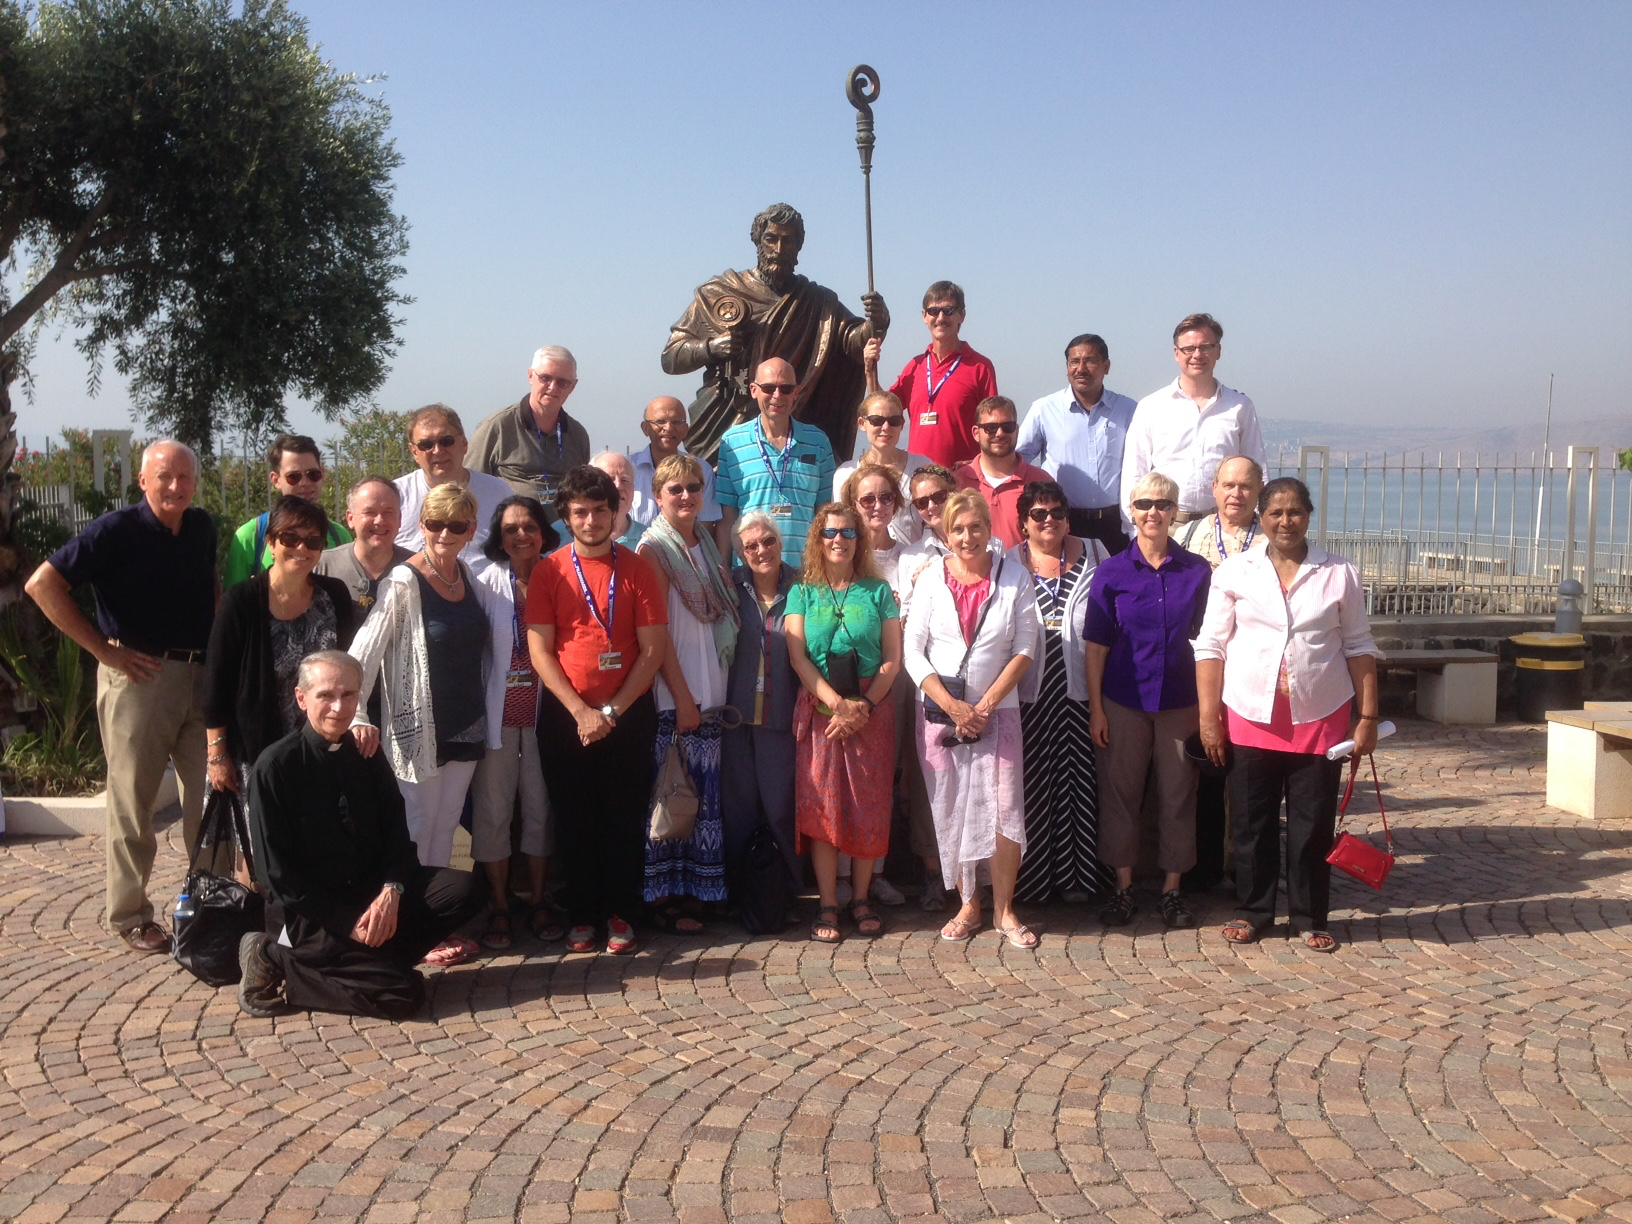 2016 Holy Land Pilgrims at the Statue of St. Peter at Capernaum, Galilee